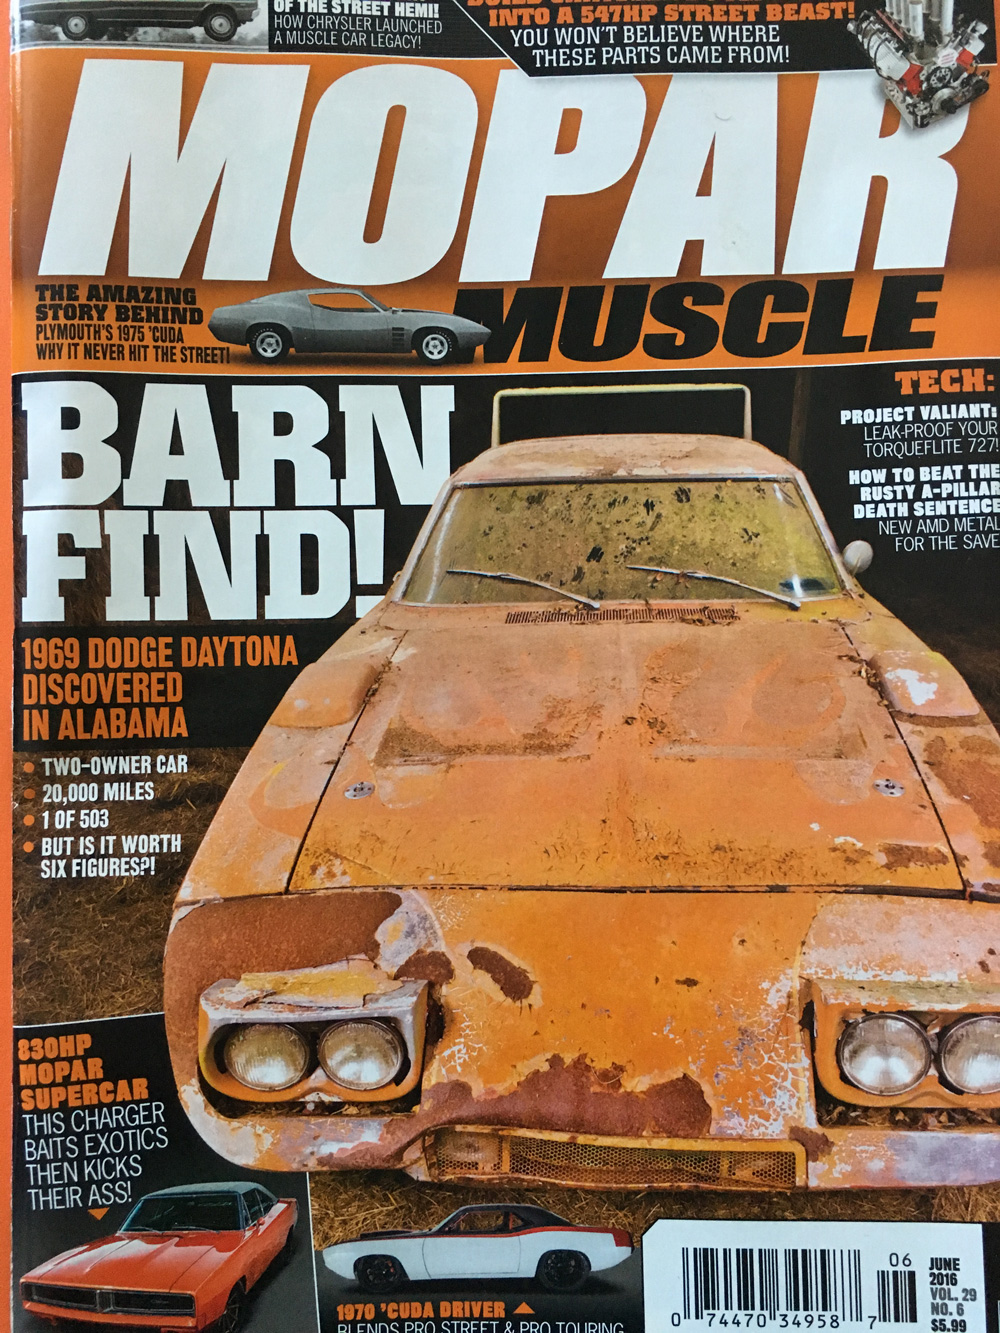 1969 Dodge Daytona Discovered in Alabama | Charlie\'s Classic Cars